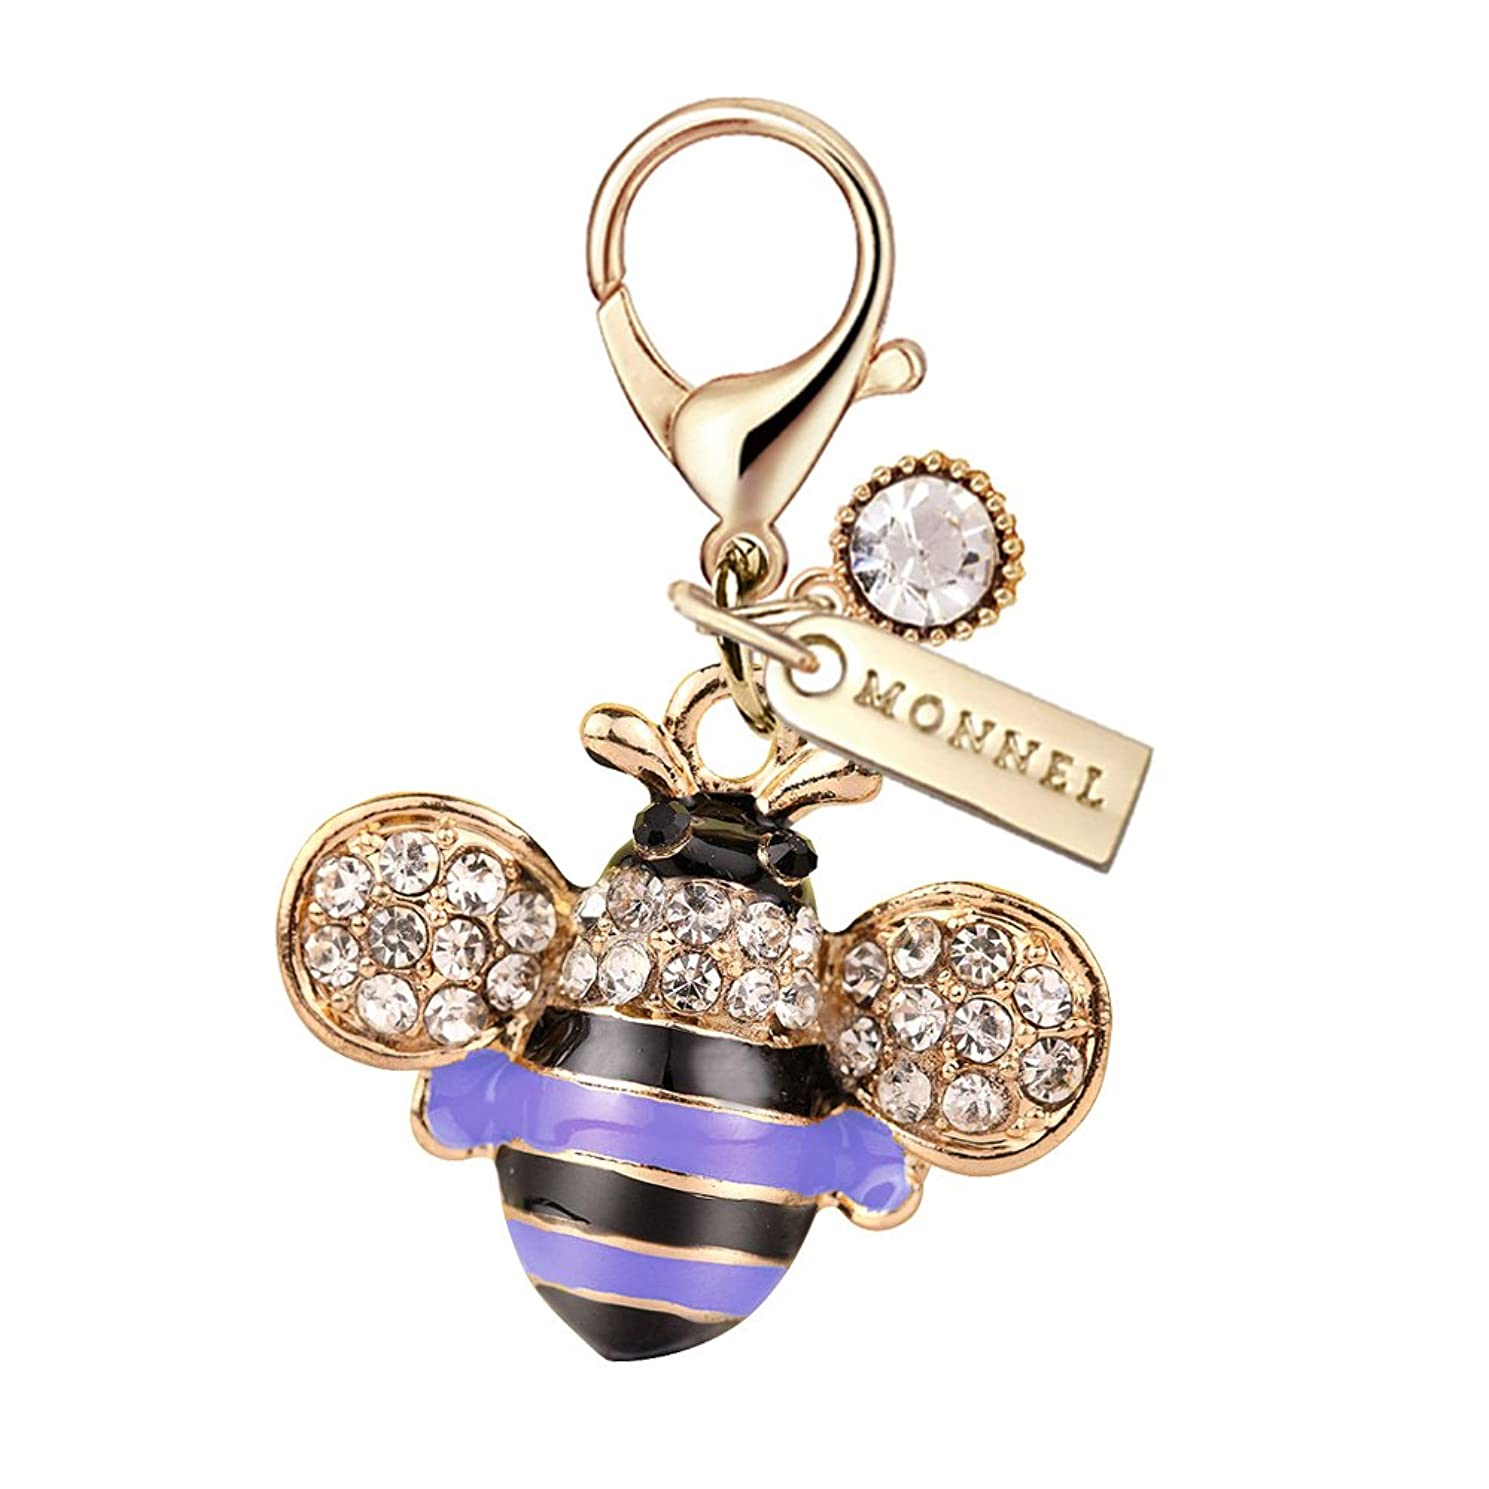 MC63 New Arrival Cute Crystal Blue Bee Lobster Clasp Charms Pendants with Pouch Bag (1 Piece)